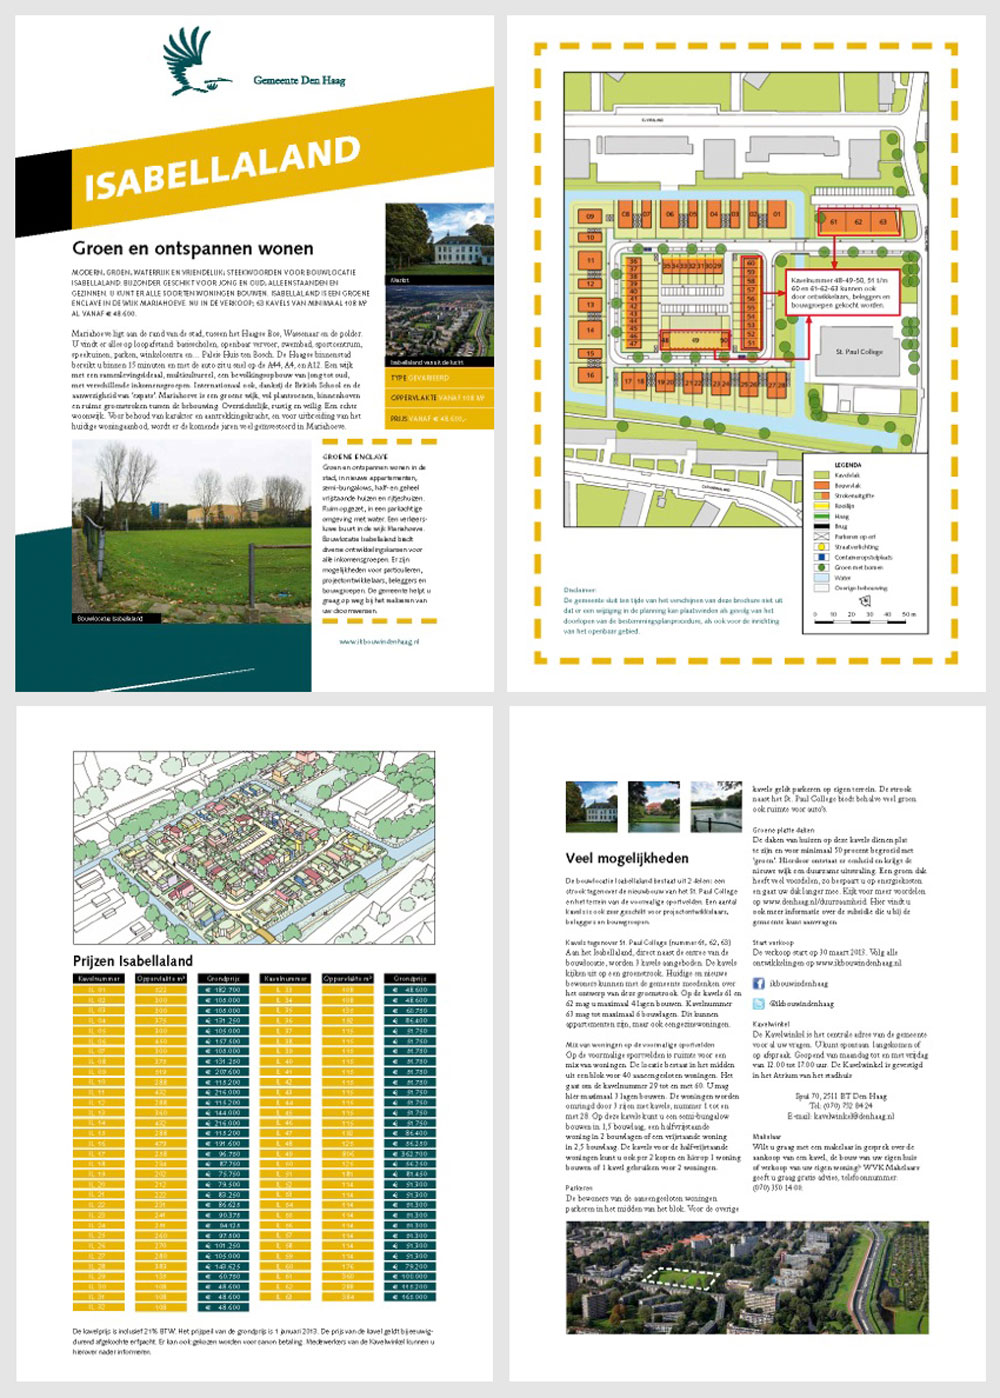 The four-page Gebiedskaart outlines the master plan, existing character of the area, likely character of the build out, plot sizes and prices